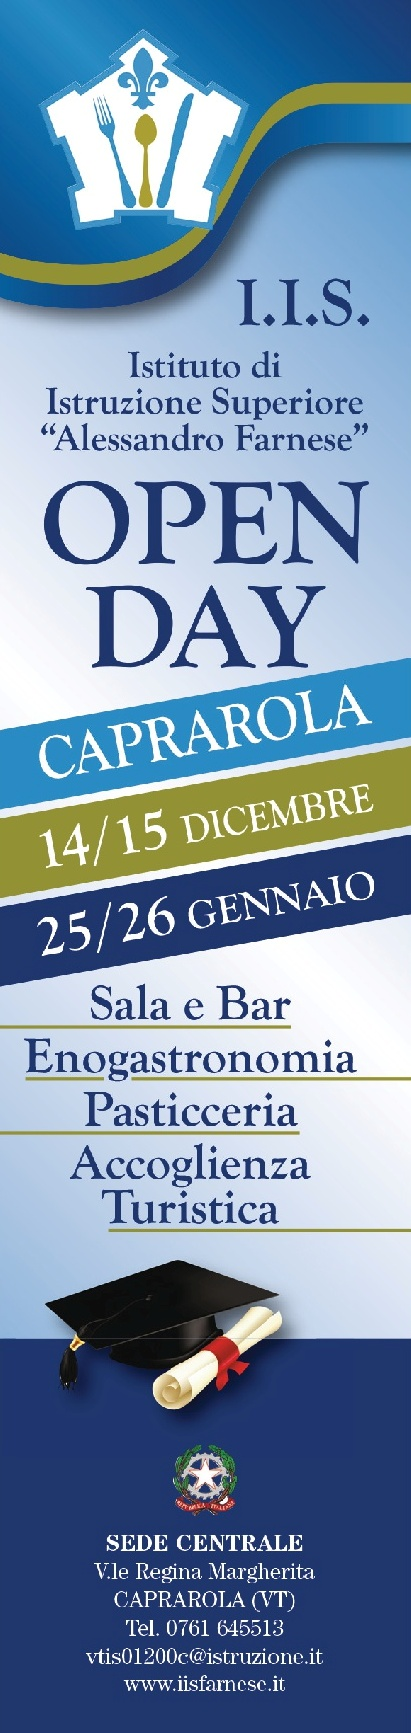 Open Day Caprarola